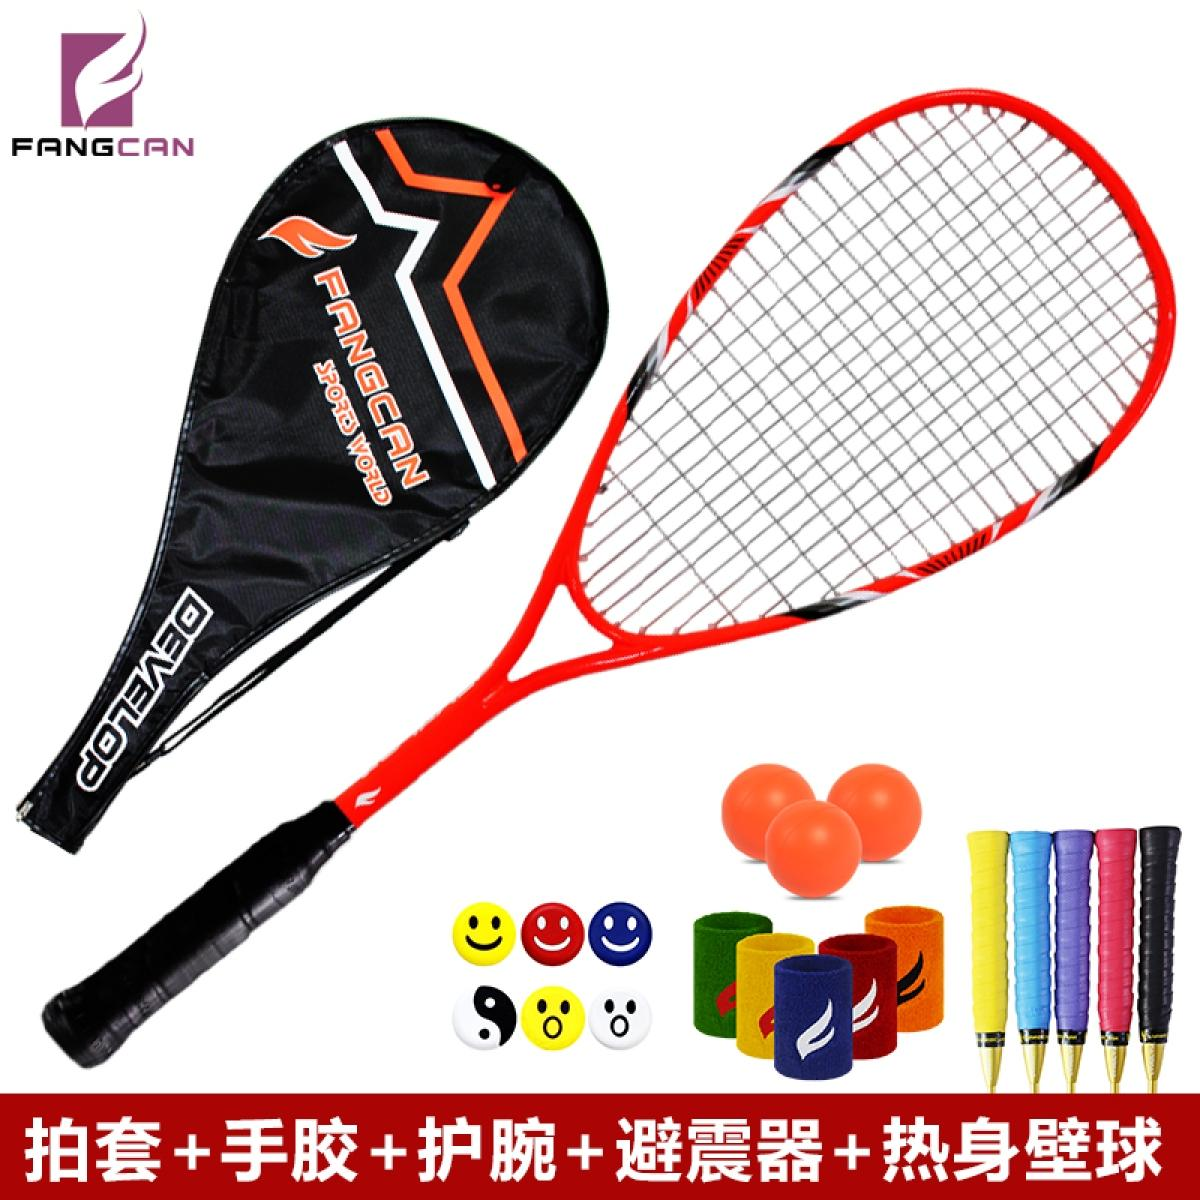 Tennis badminton squash equipment